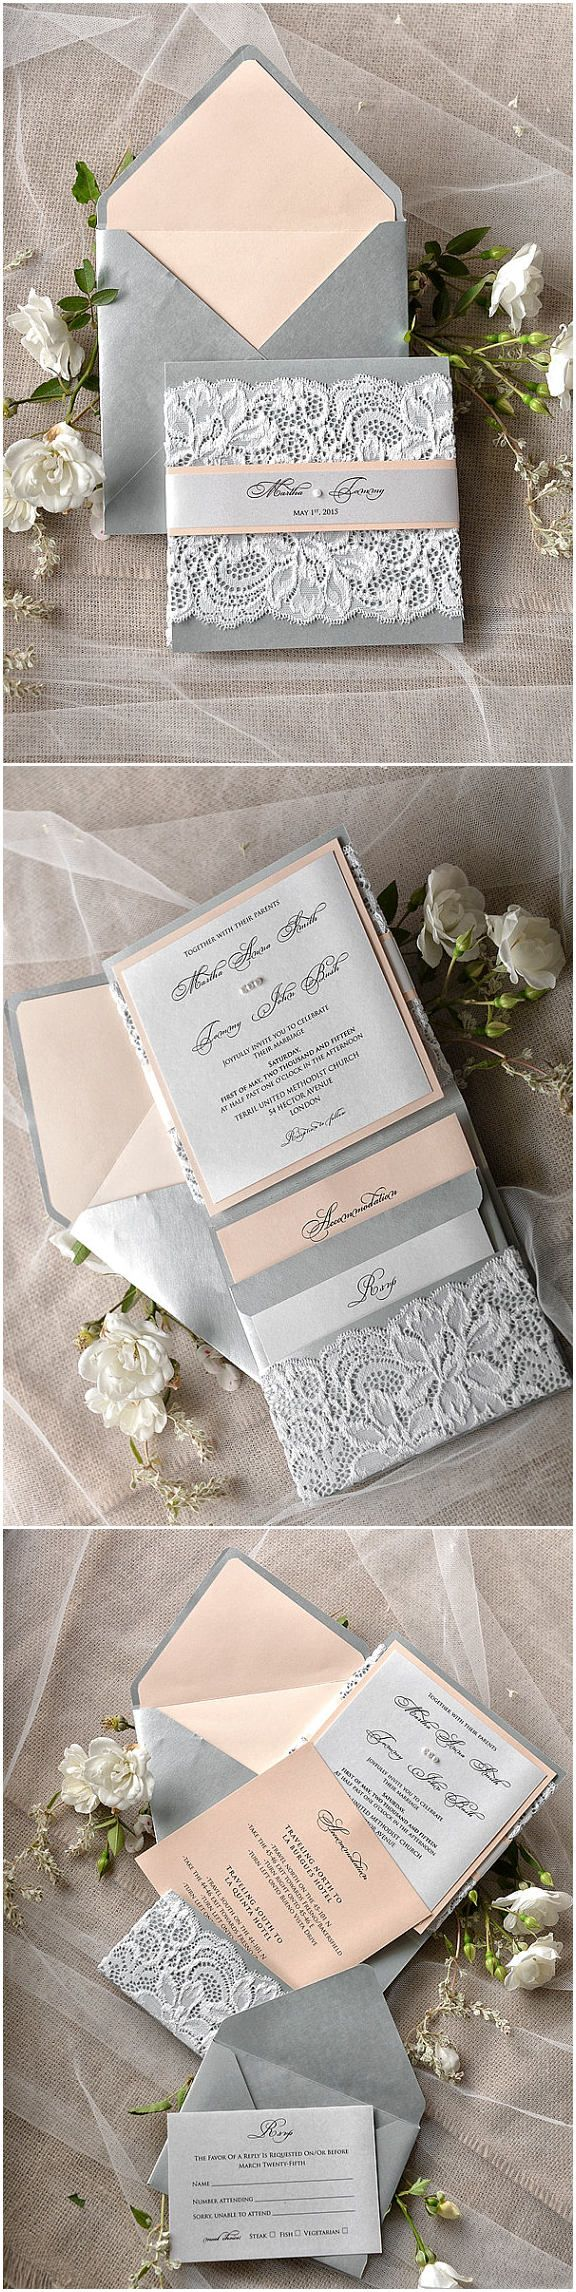 peach and grey rustic vintage lace wedding invitations